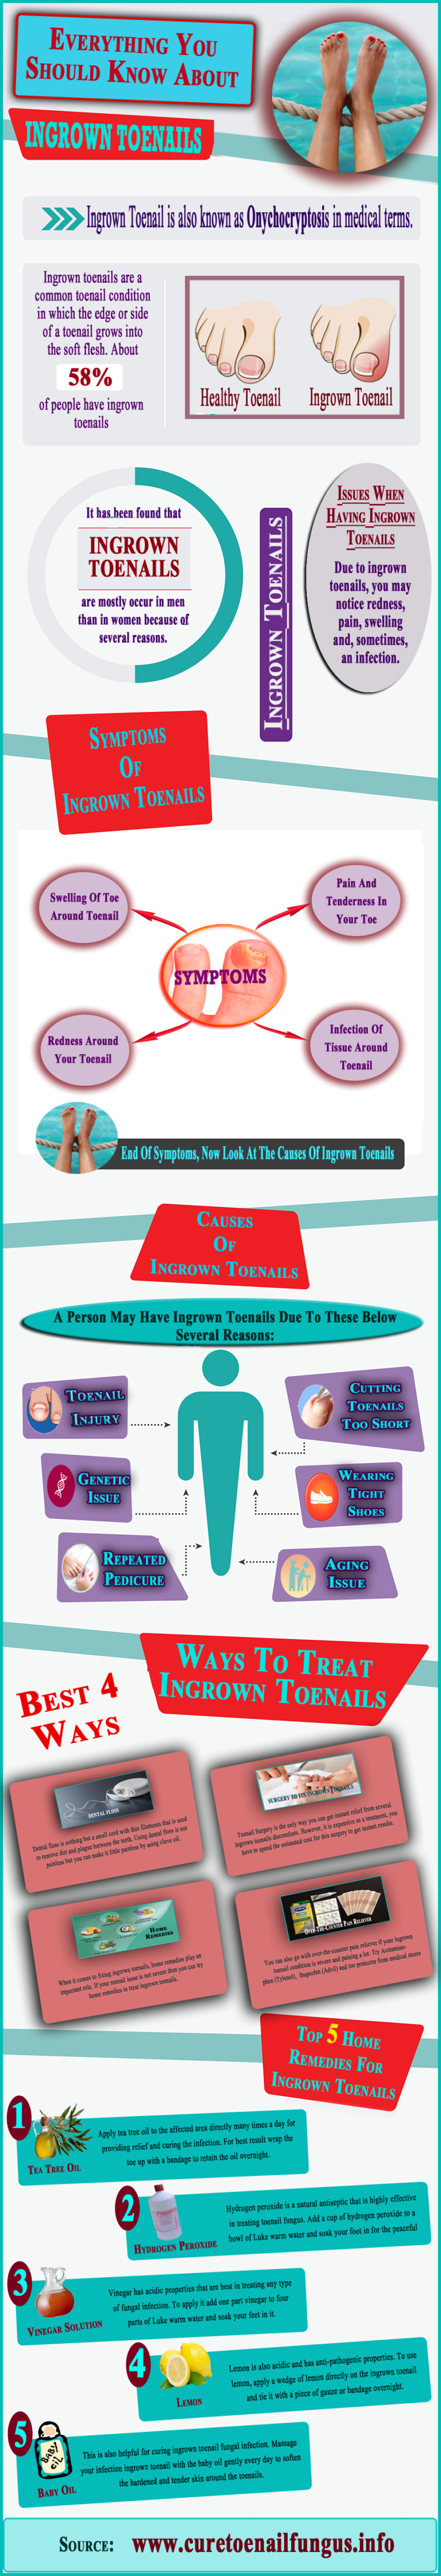 Treatment for Ingrown Toenails: Effective Home Remedies - Infographic